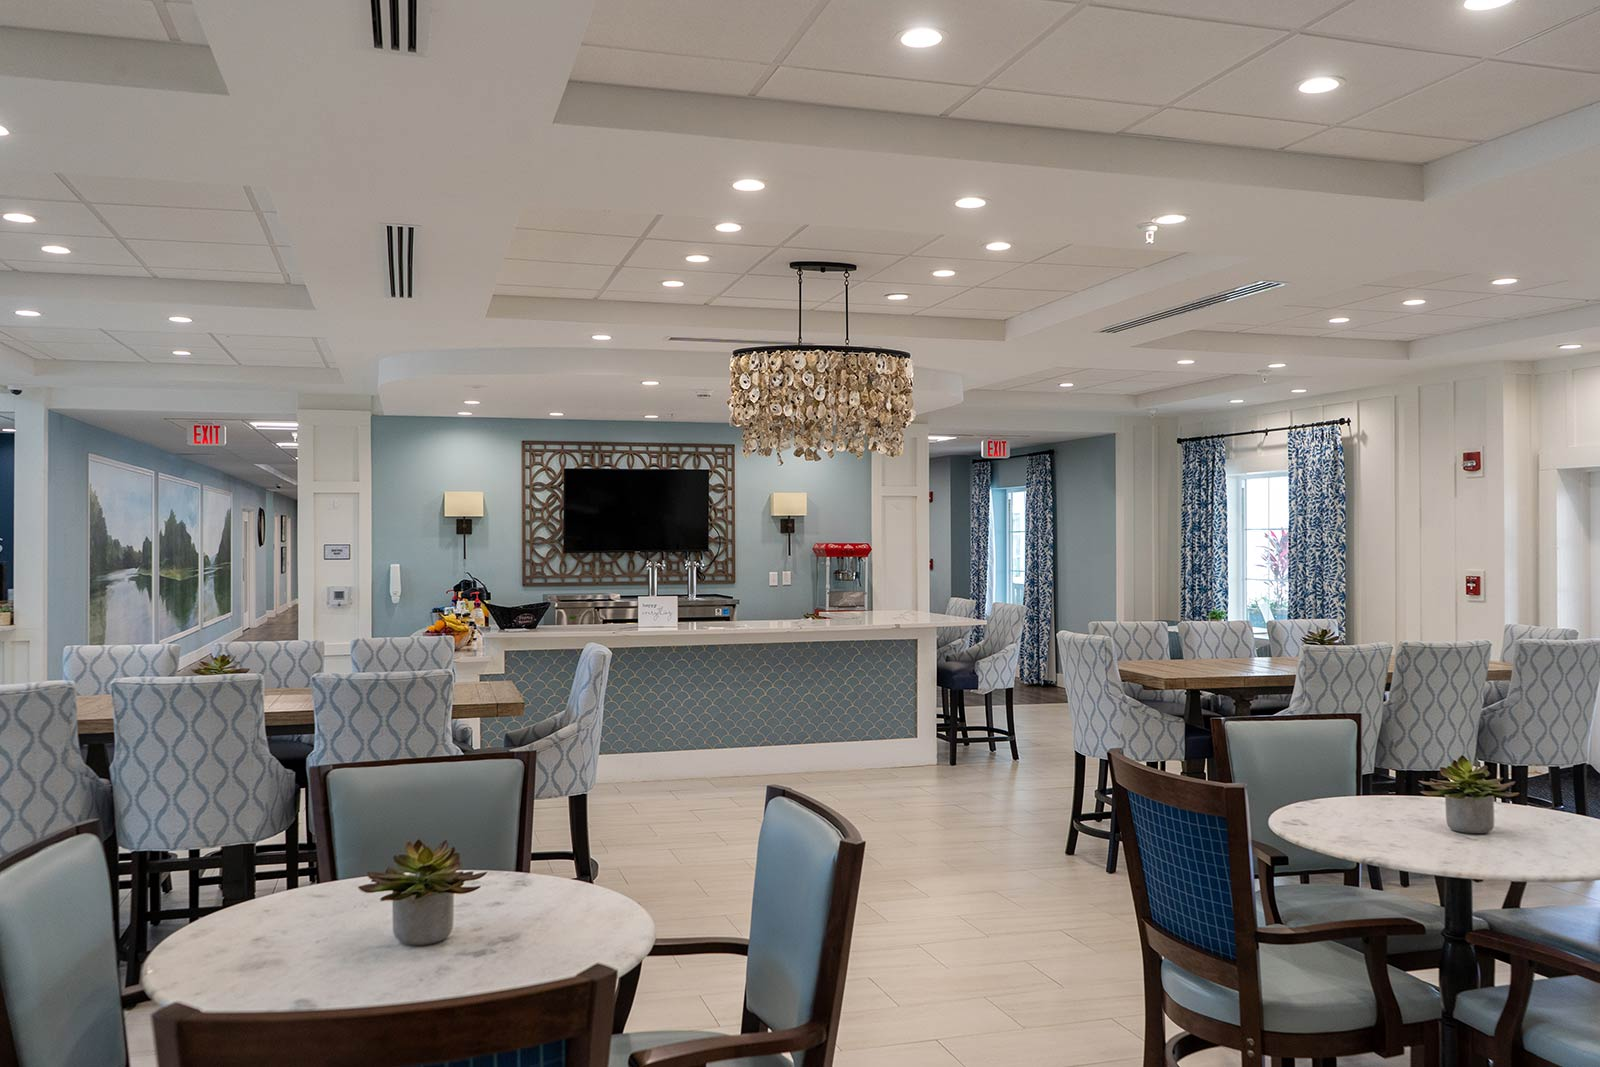 Restaurant-style Dining Room With Tables And Chairs At Seagrass Village Of Panama City Beach